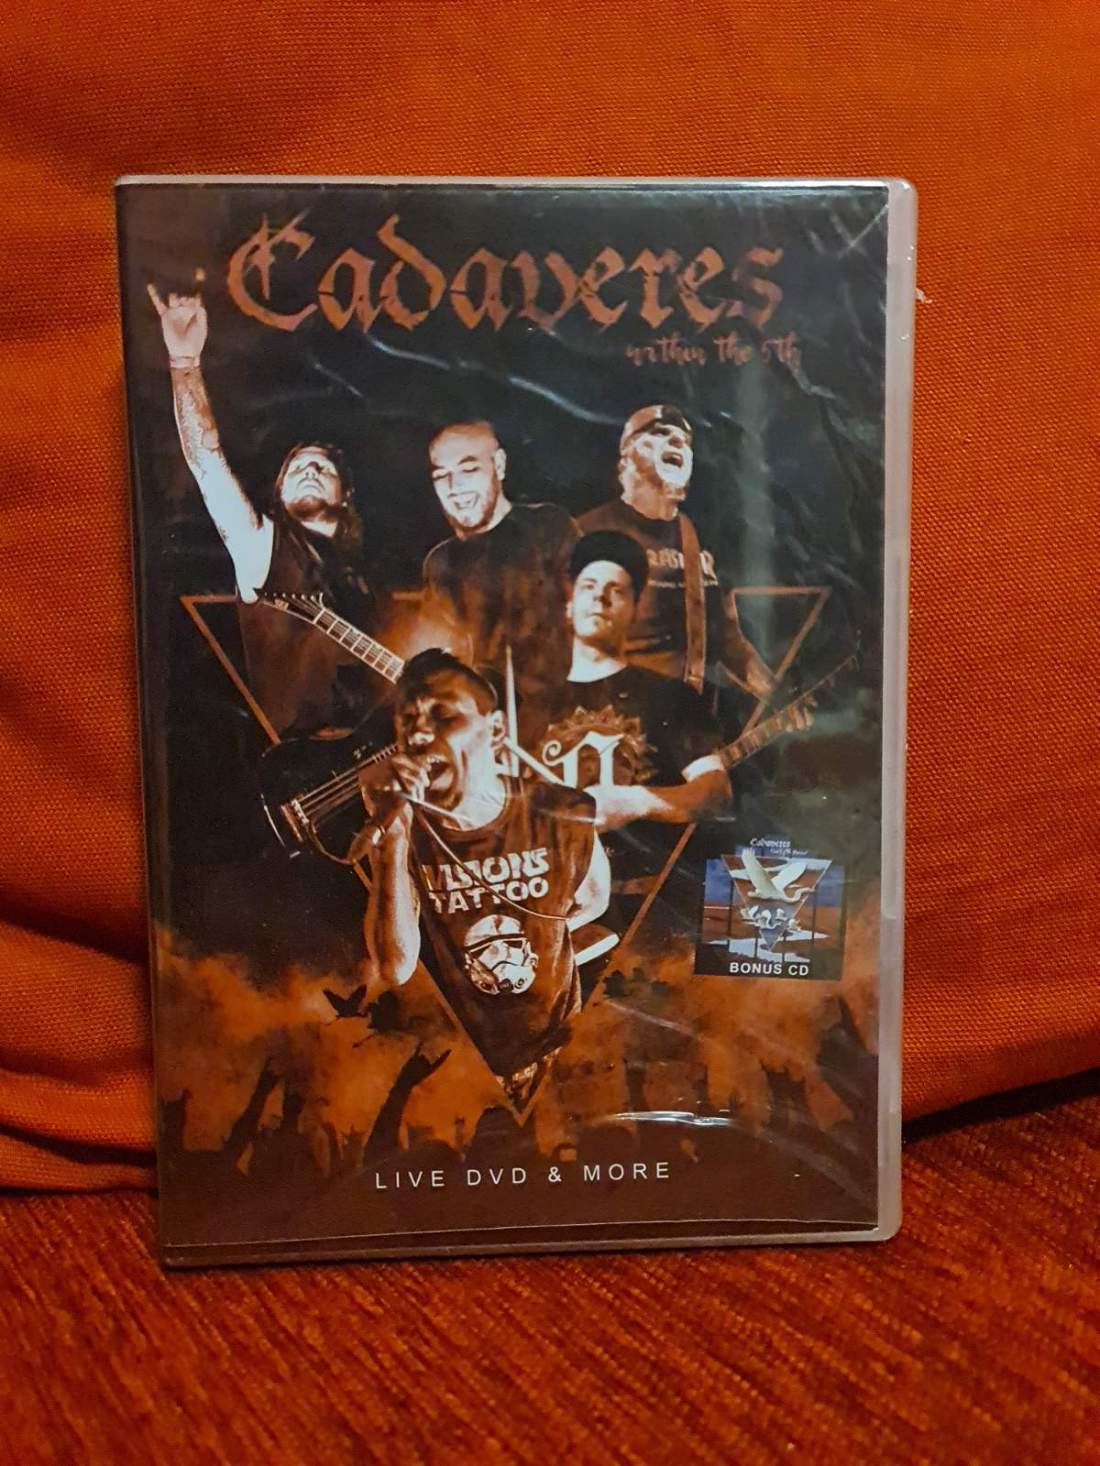 CADAVERES - WITHIN THE 5TH + THE FIFTH HOUSE CD+DVD